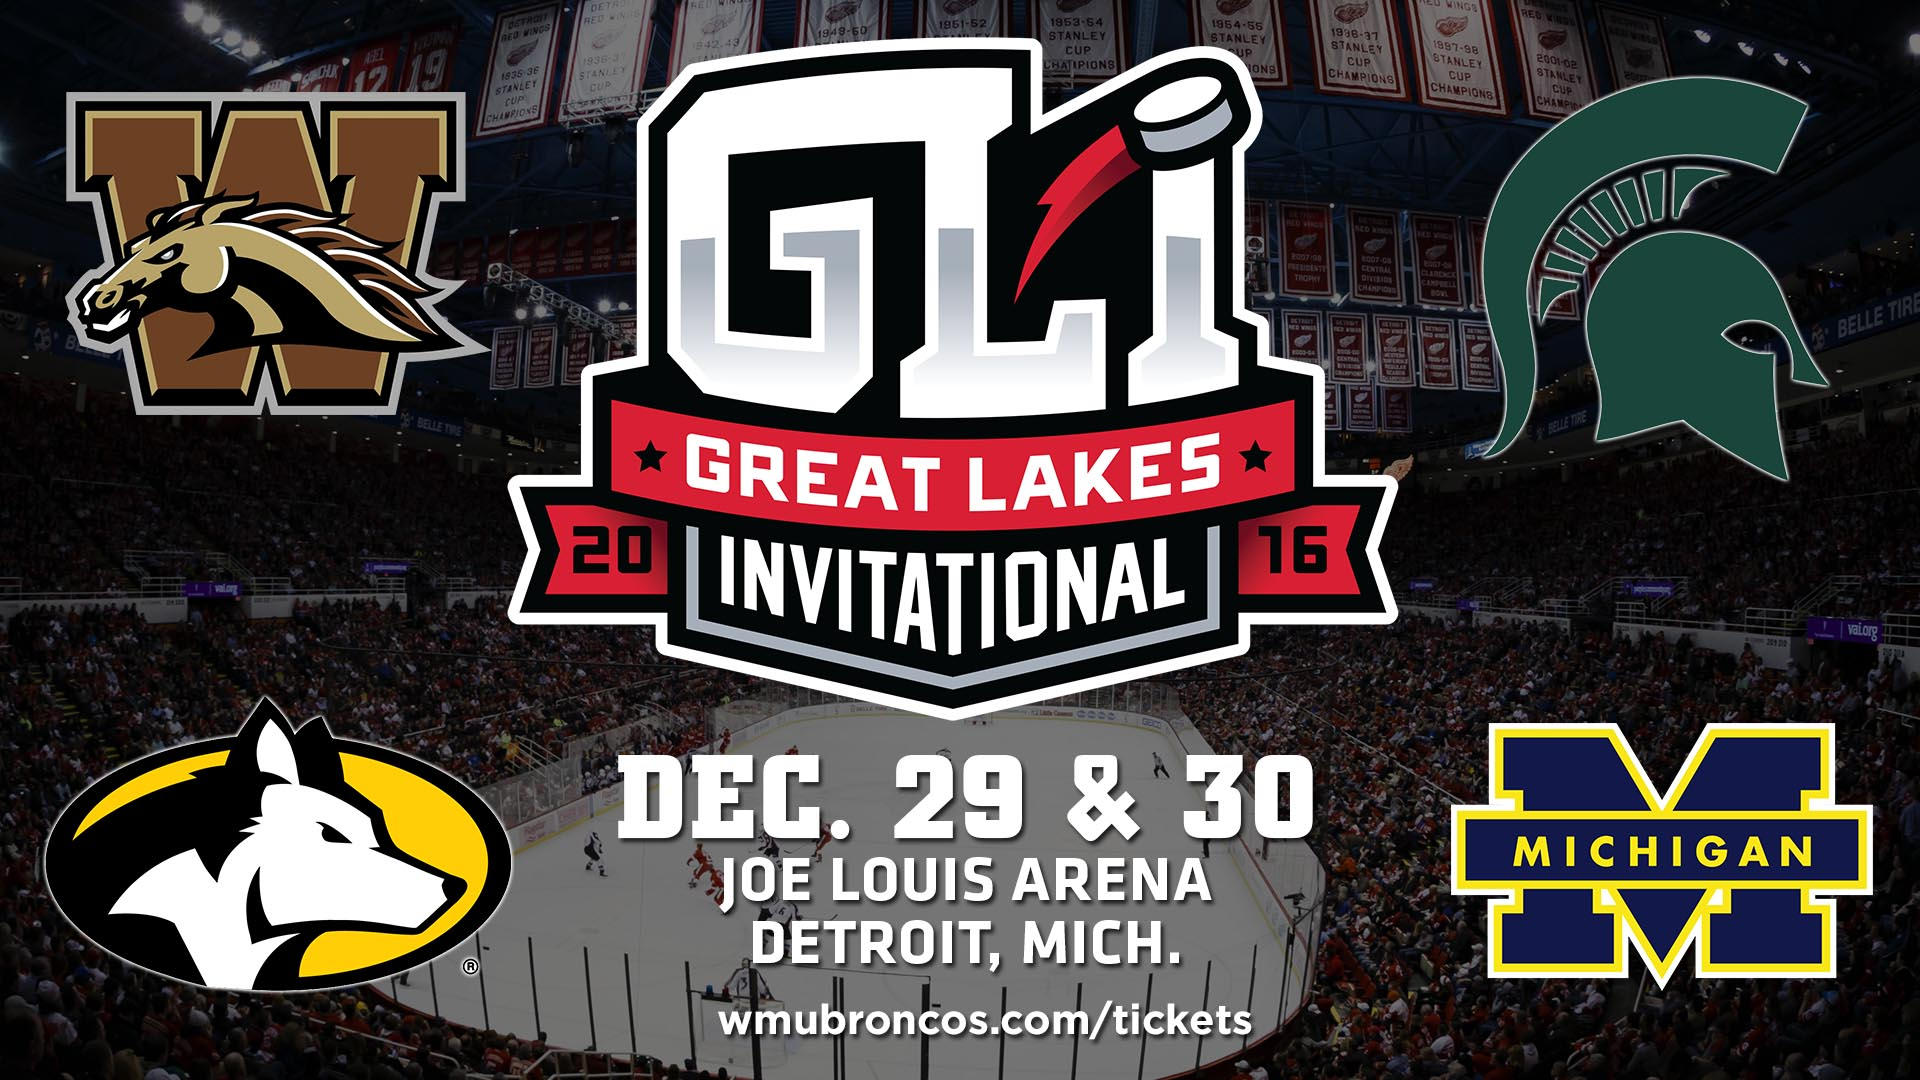 2016 Great Lakes Invitational Information